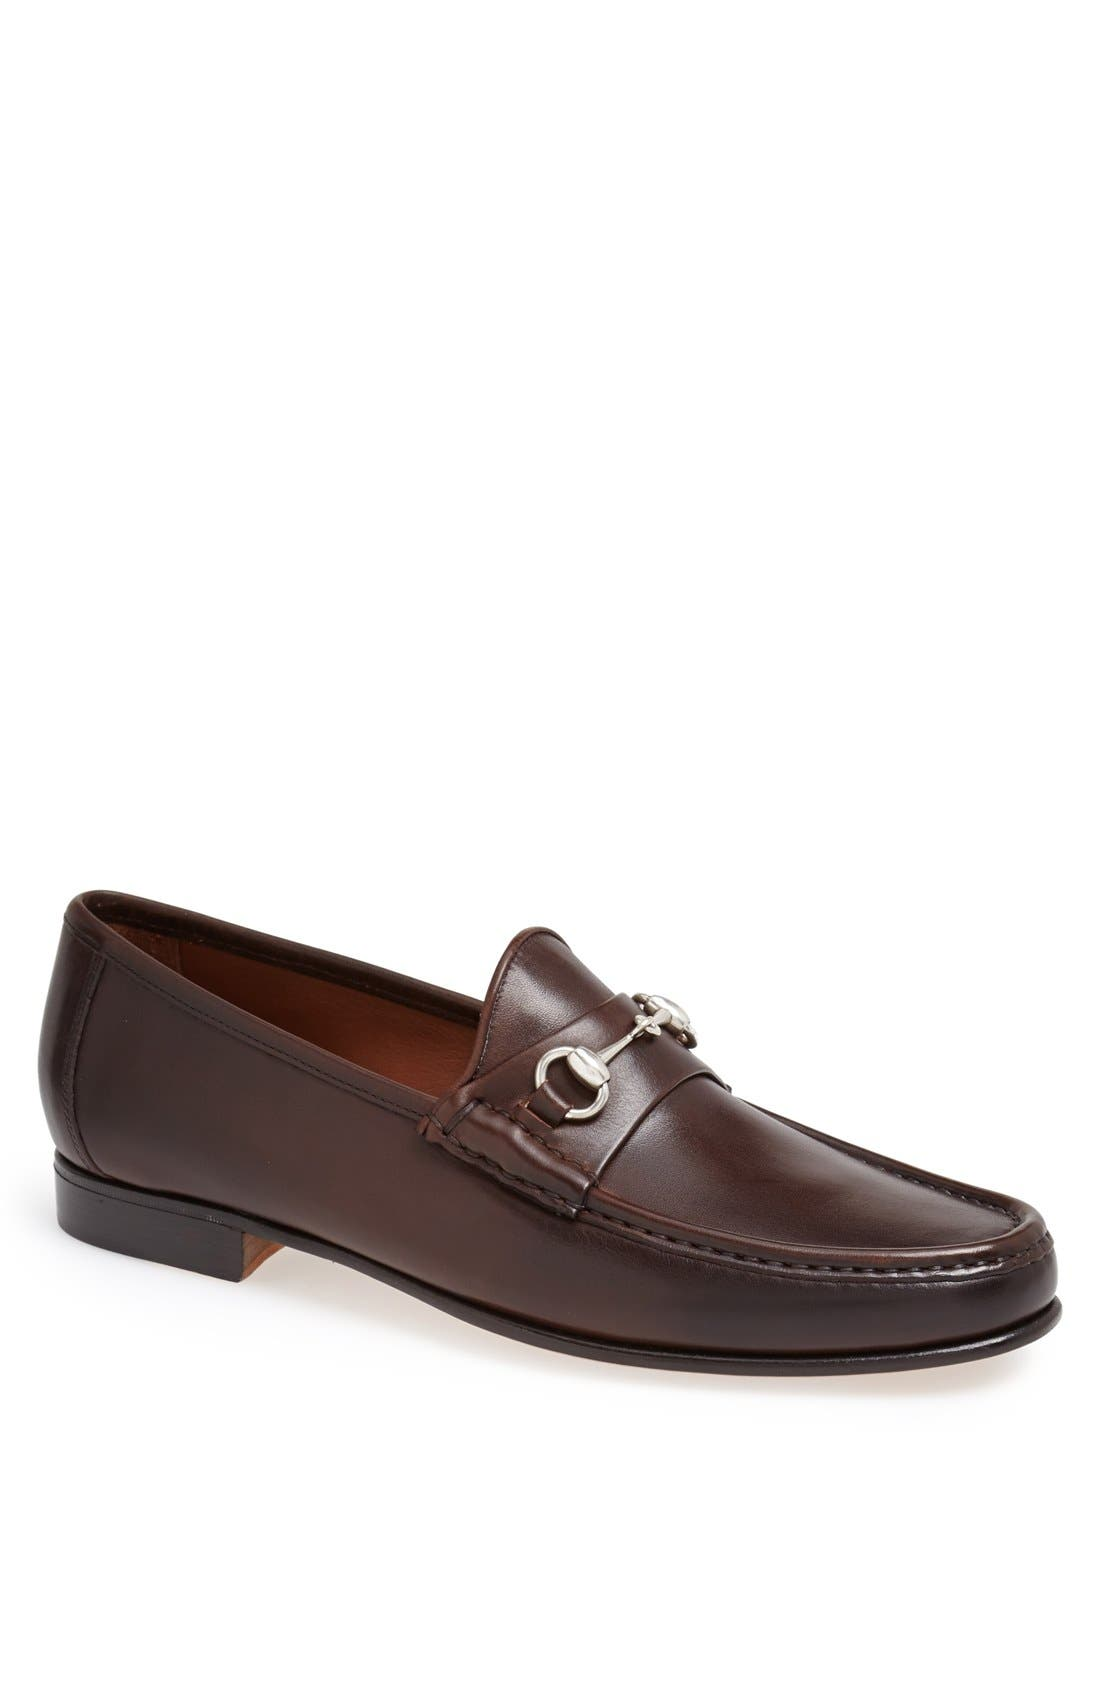 ALLEN EDMONDS Verona II Bit Loafer, Main, color, BROWN/ BROWN